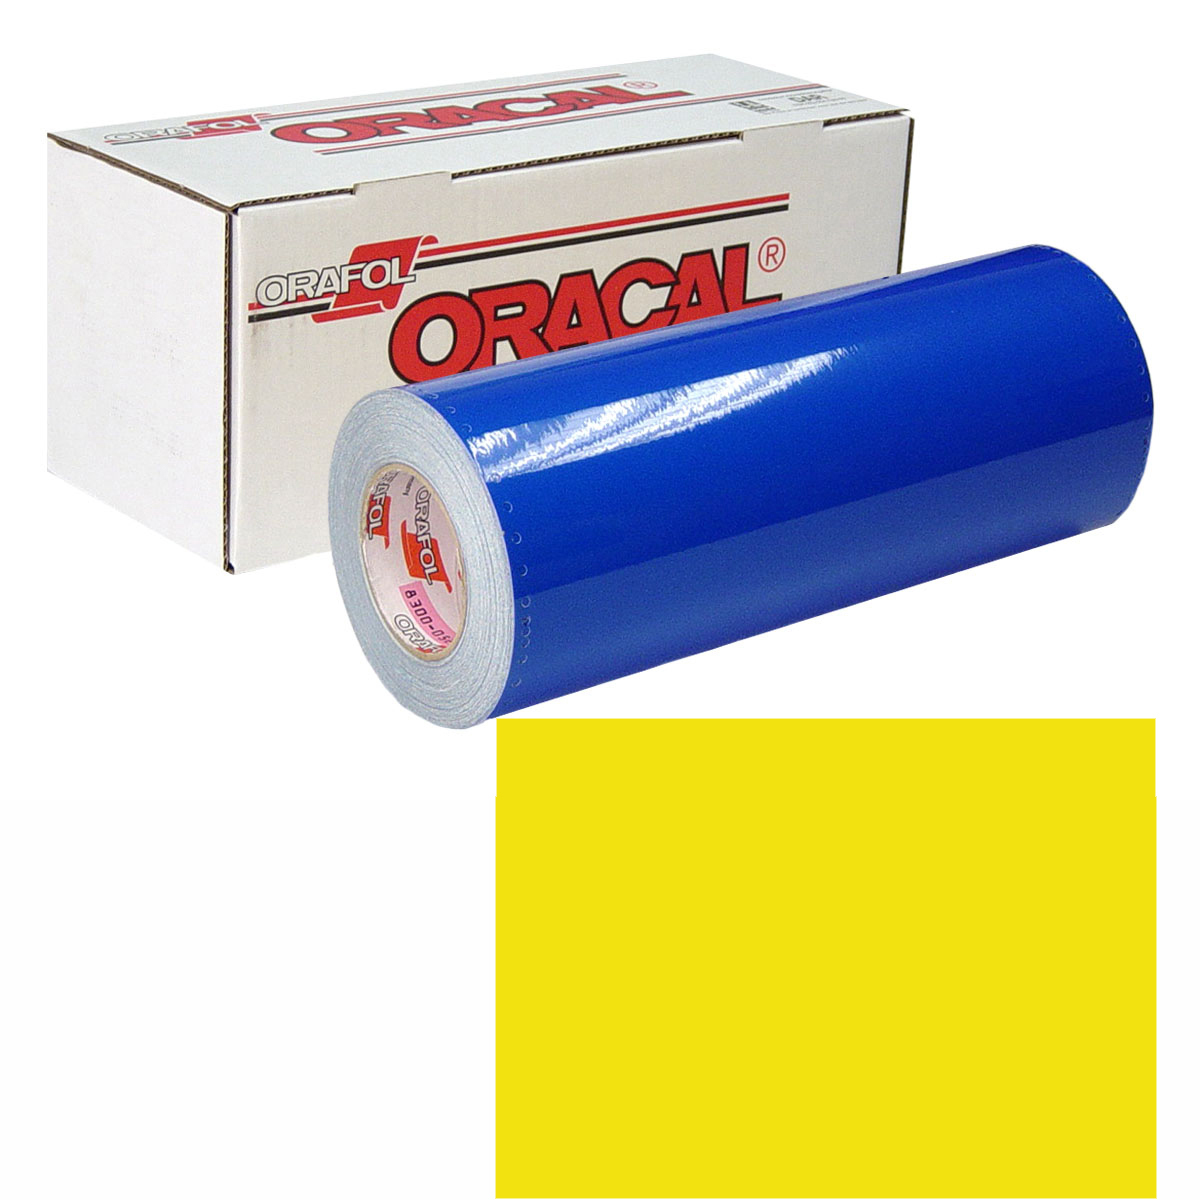 ORACAL 631 15In X 50Yd 025 Brimstone Yellow